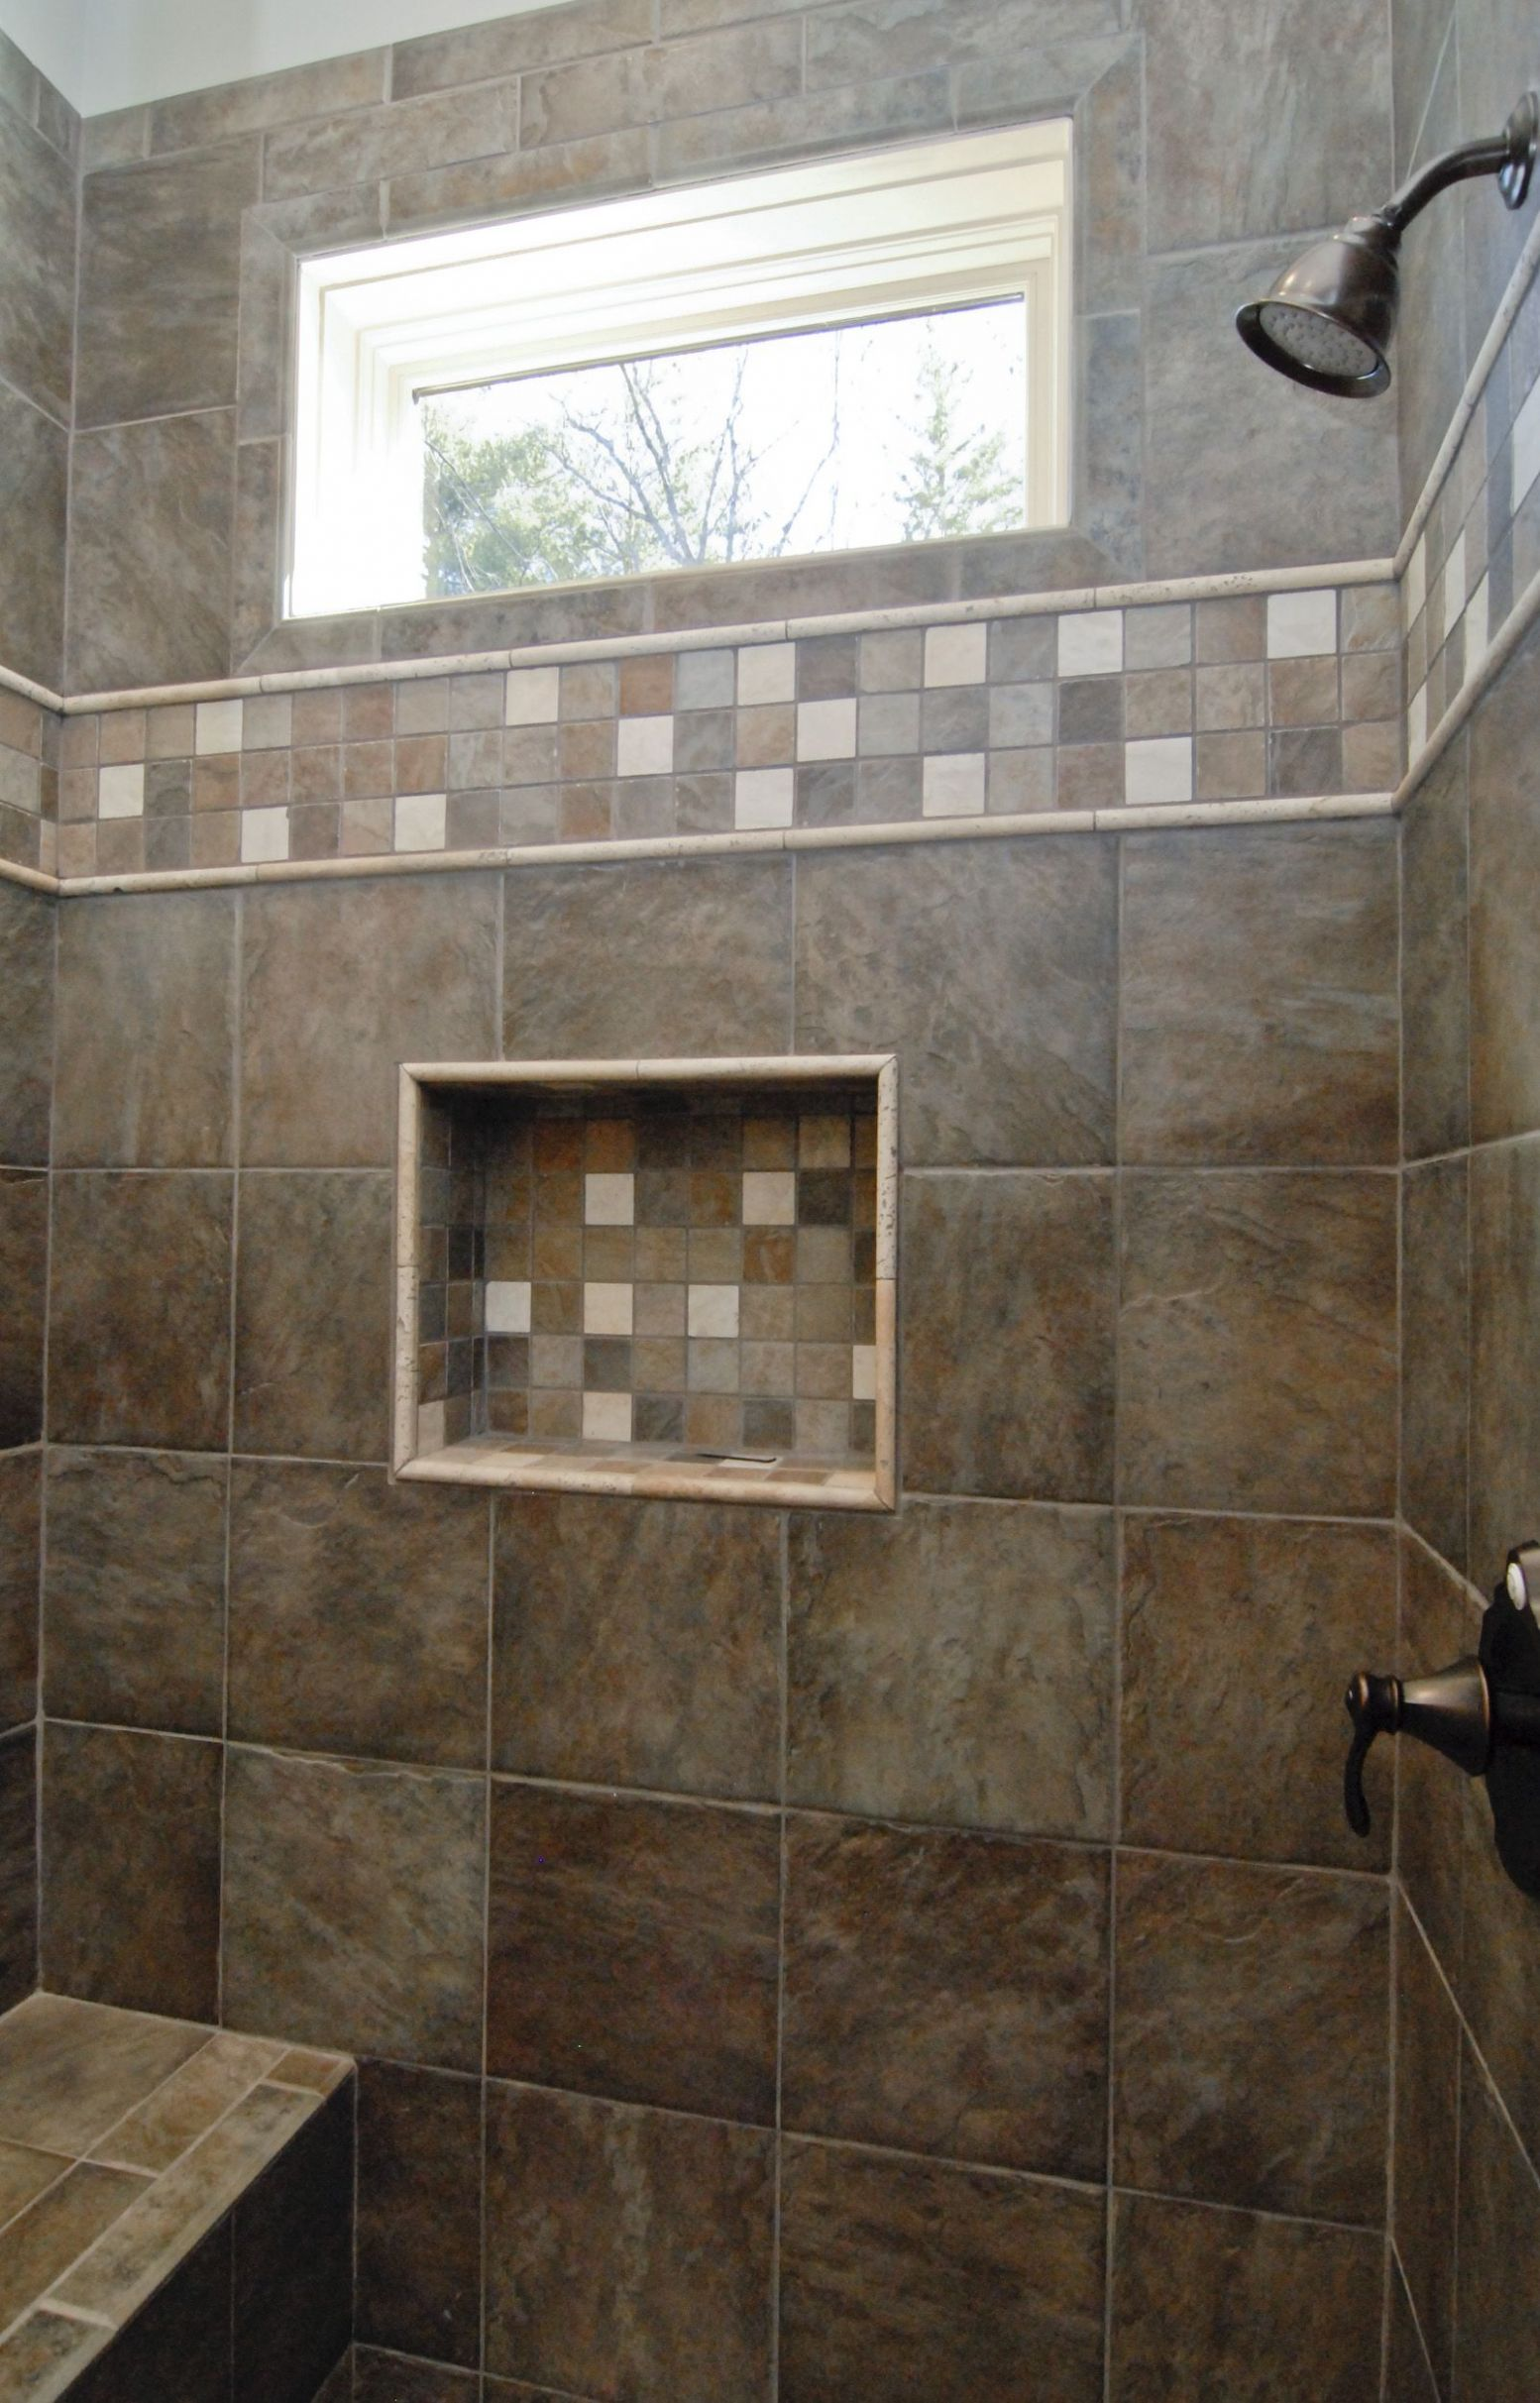 Custom Home Builder (With images) | Window in shower, Tile walk in ..